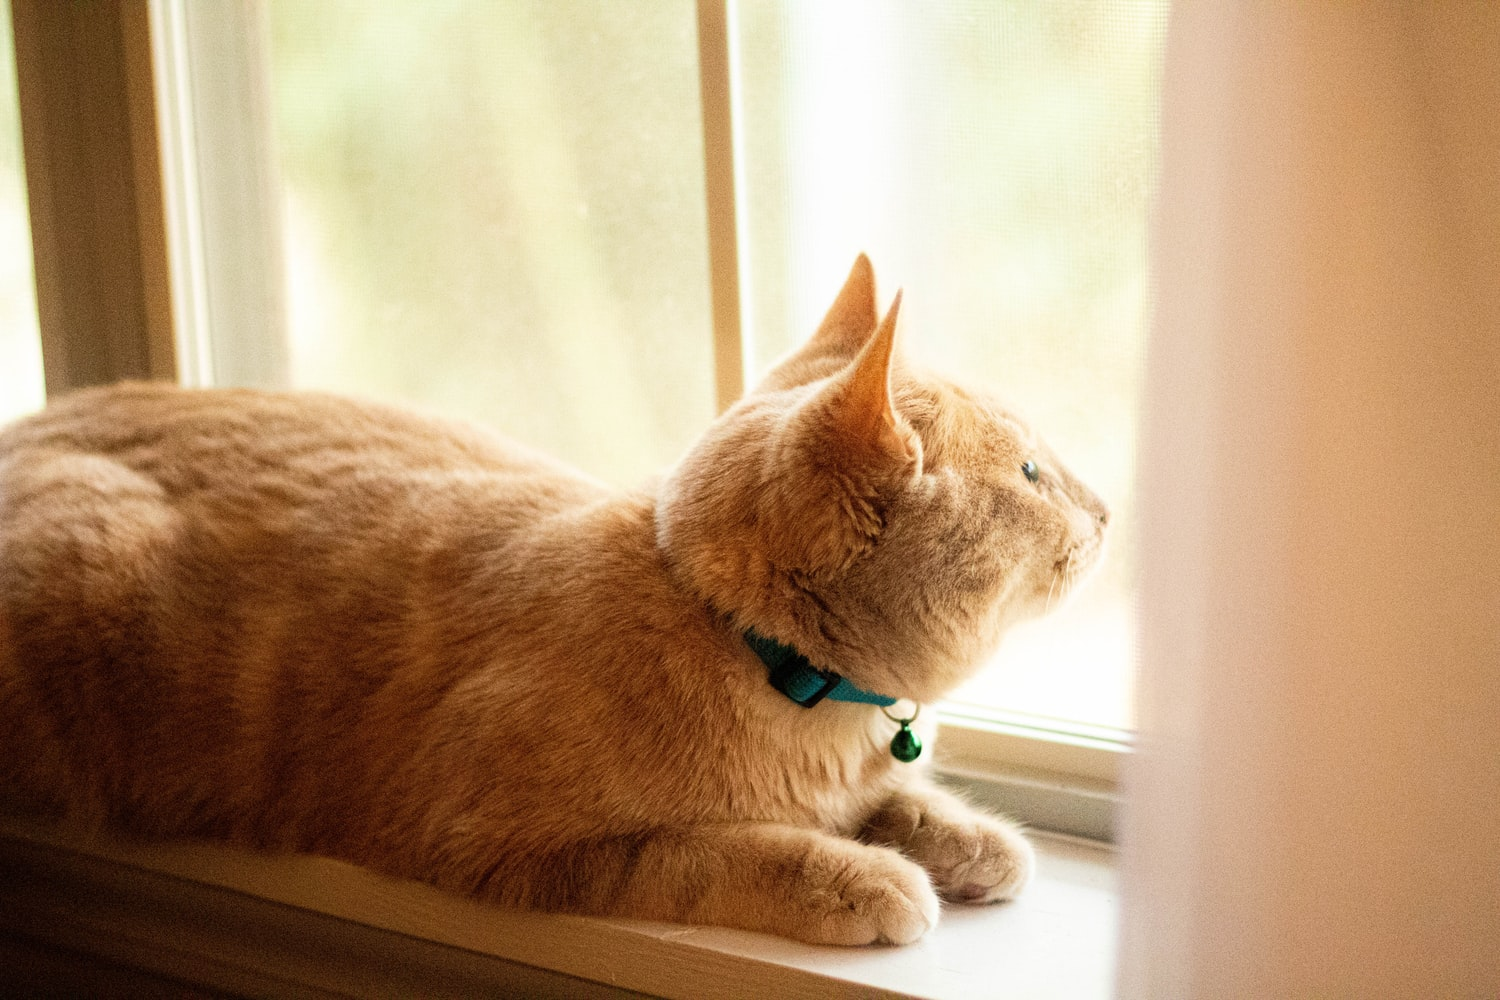 ginger cat on window ledge wearing collar with a bell